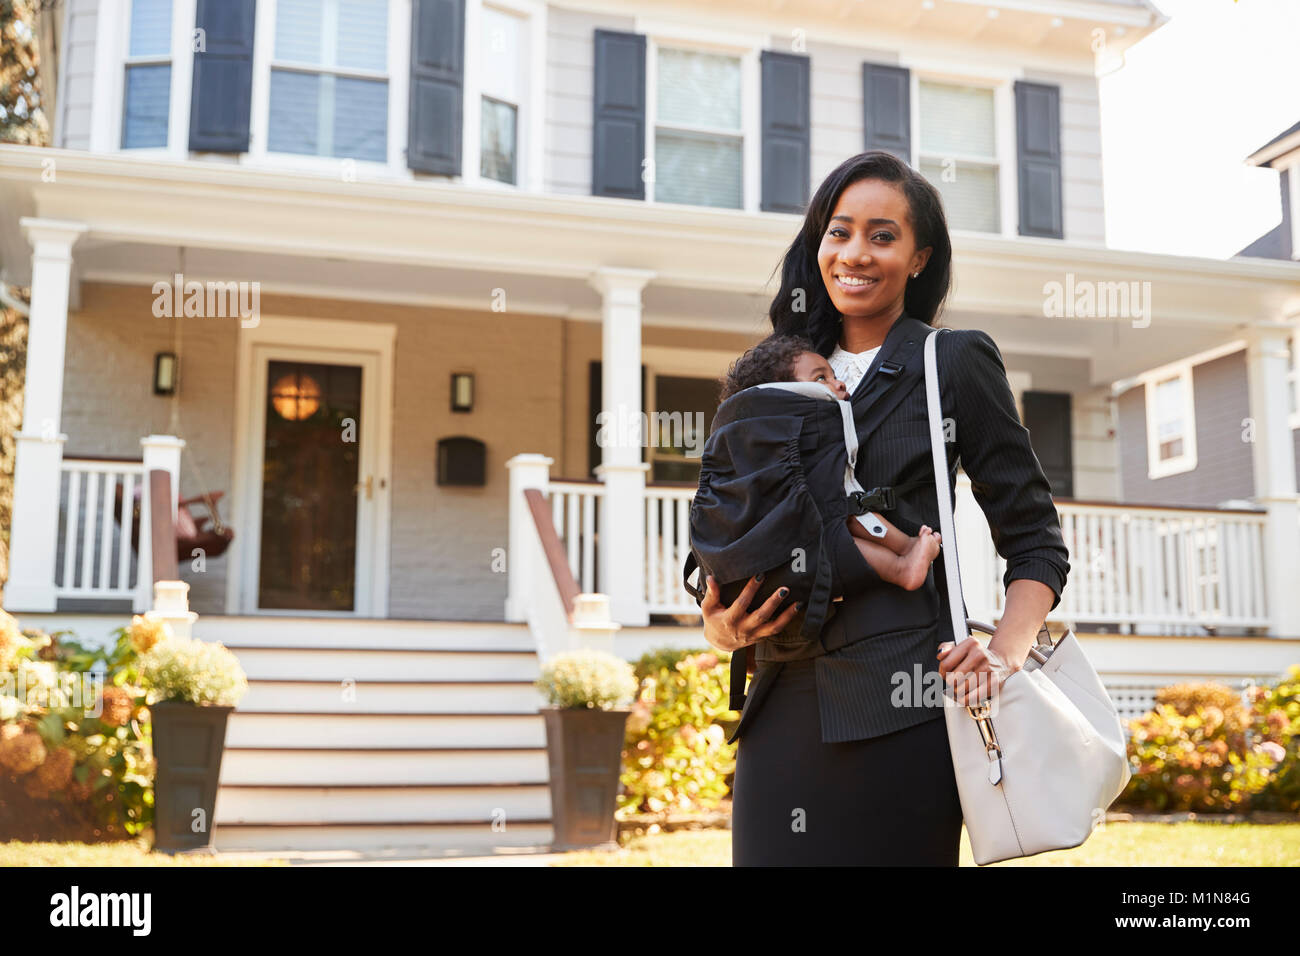 Businesswoman With Baby Son Leaving House For Work - Stock Image